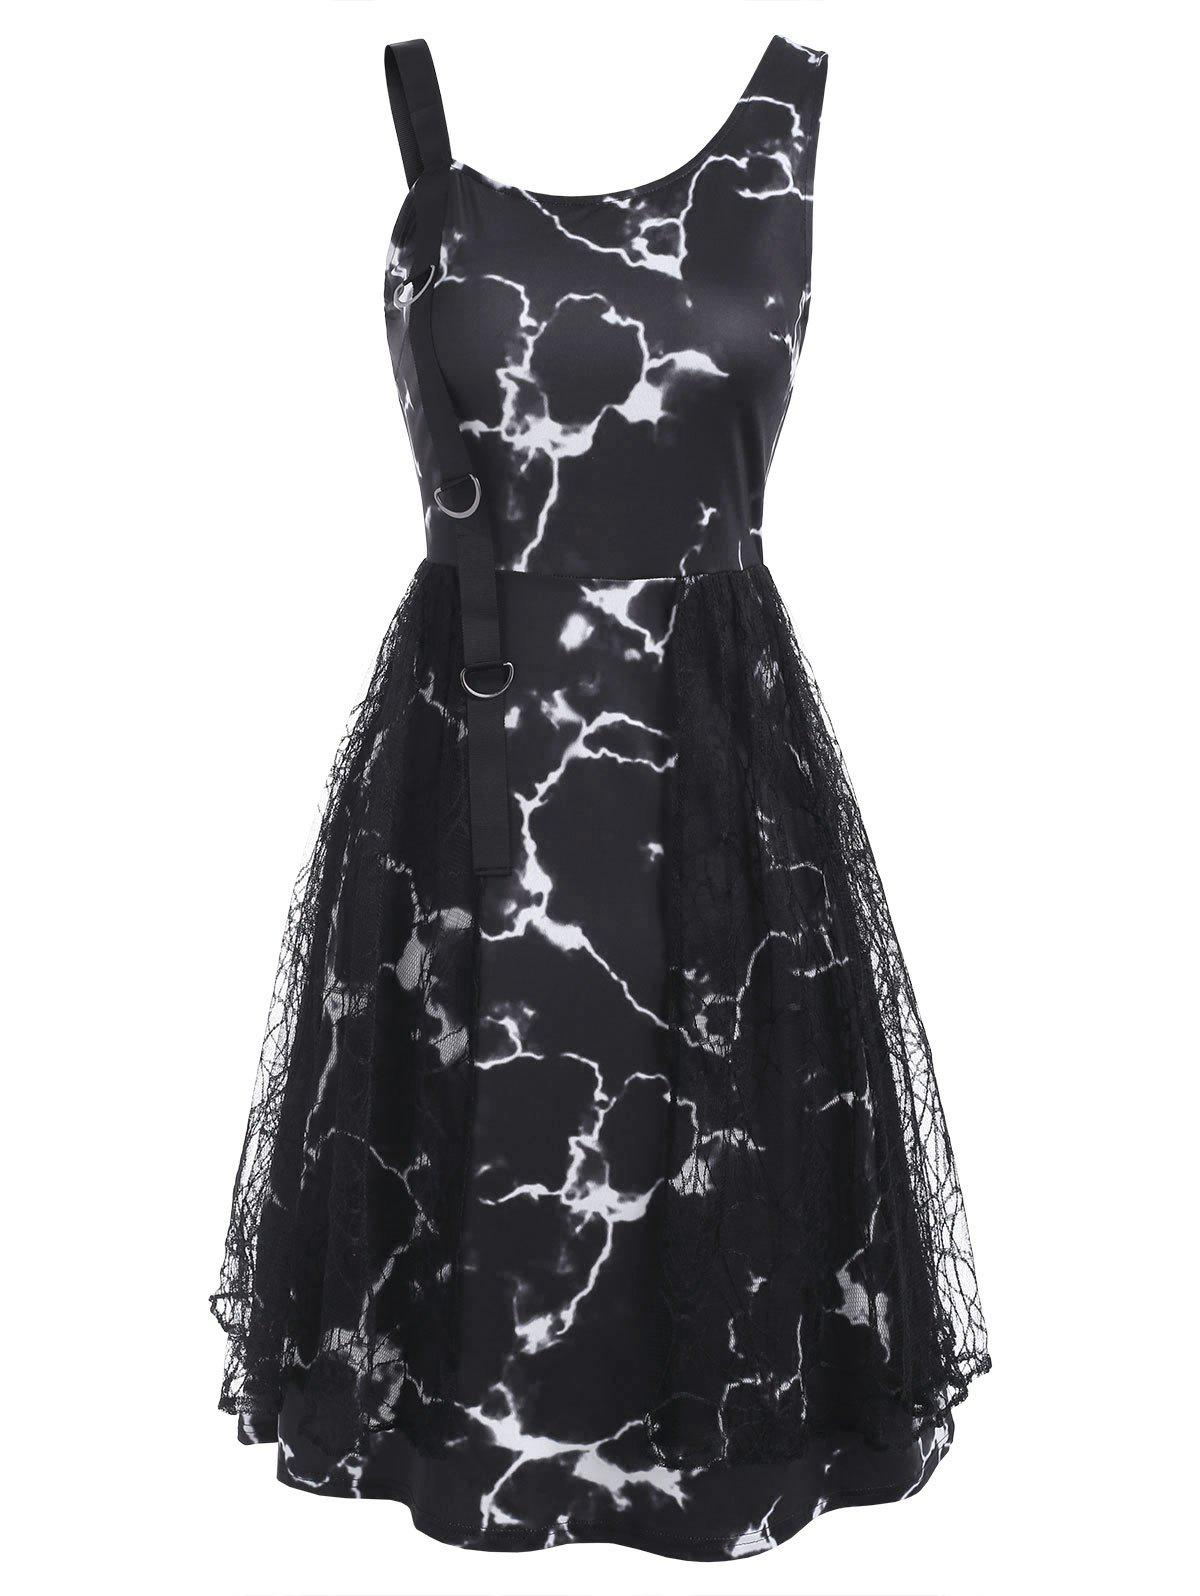 Chic Marble Print D-ring Lace Panel Sleeveless Dress